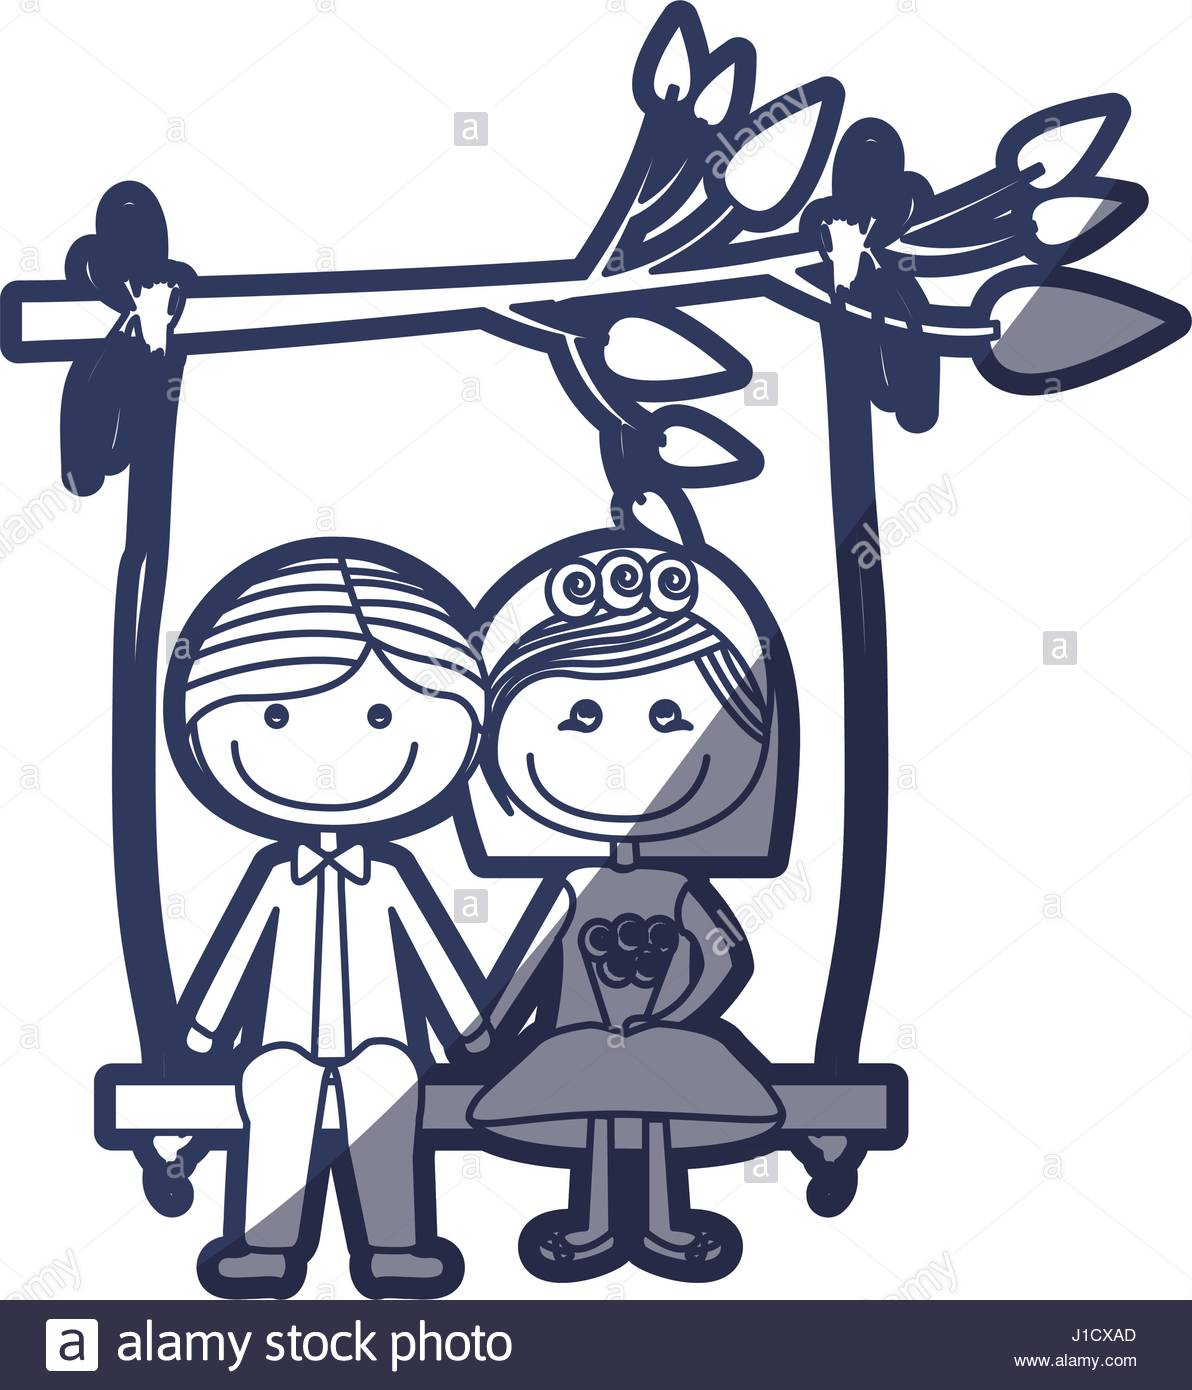 1192x1390 Blue Color Contour Caricature Married Couple In Love Sit In Swing